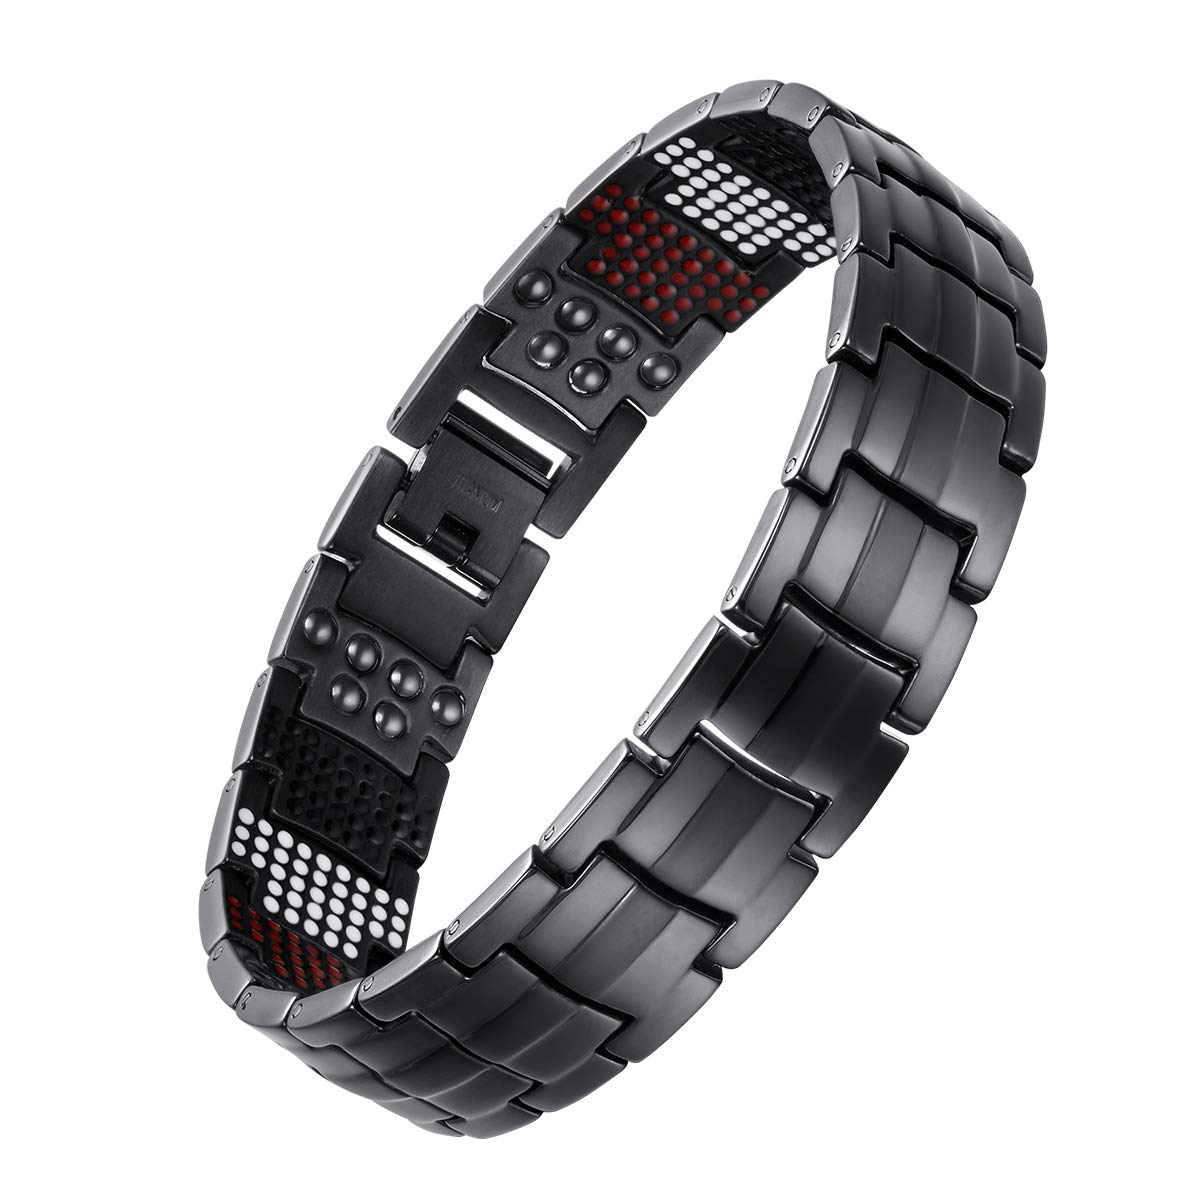 USWEL Titanium Bracelet for Men Black PVD Coating 591pcs Minerals Magnetic Bracelet for Men Pain Relieving Bracelet for Arthritis and Carpal Tunnel with Link Removal Tool and Gift Box Packed